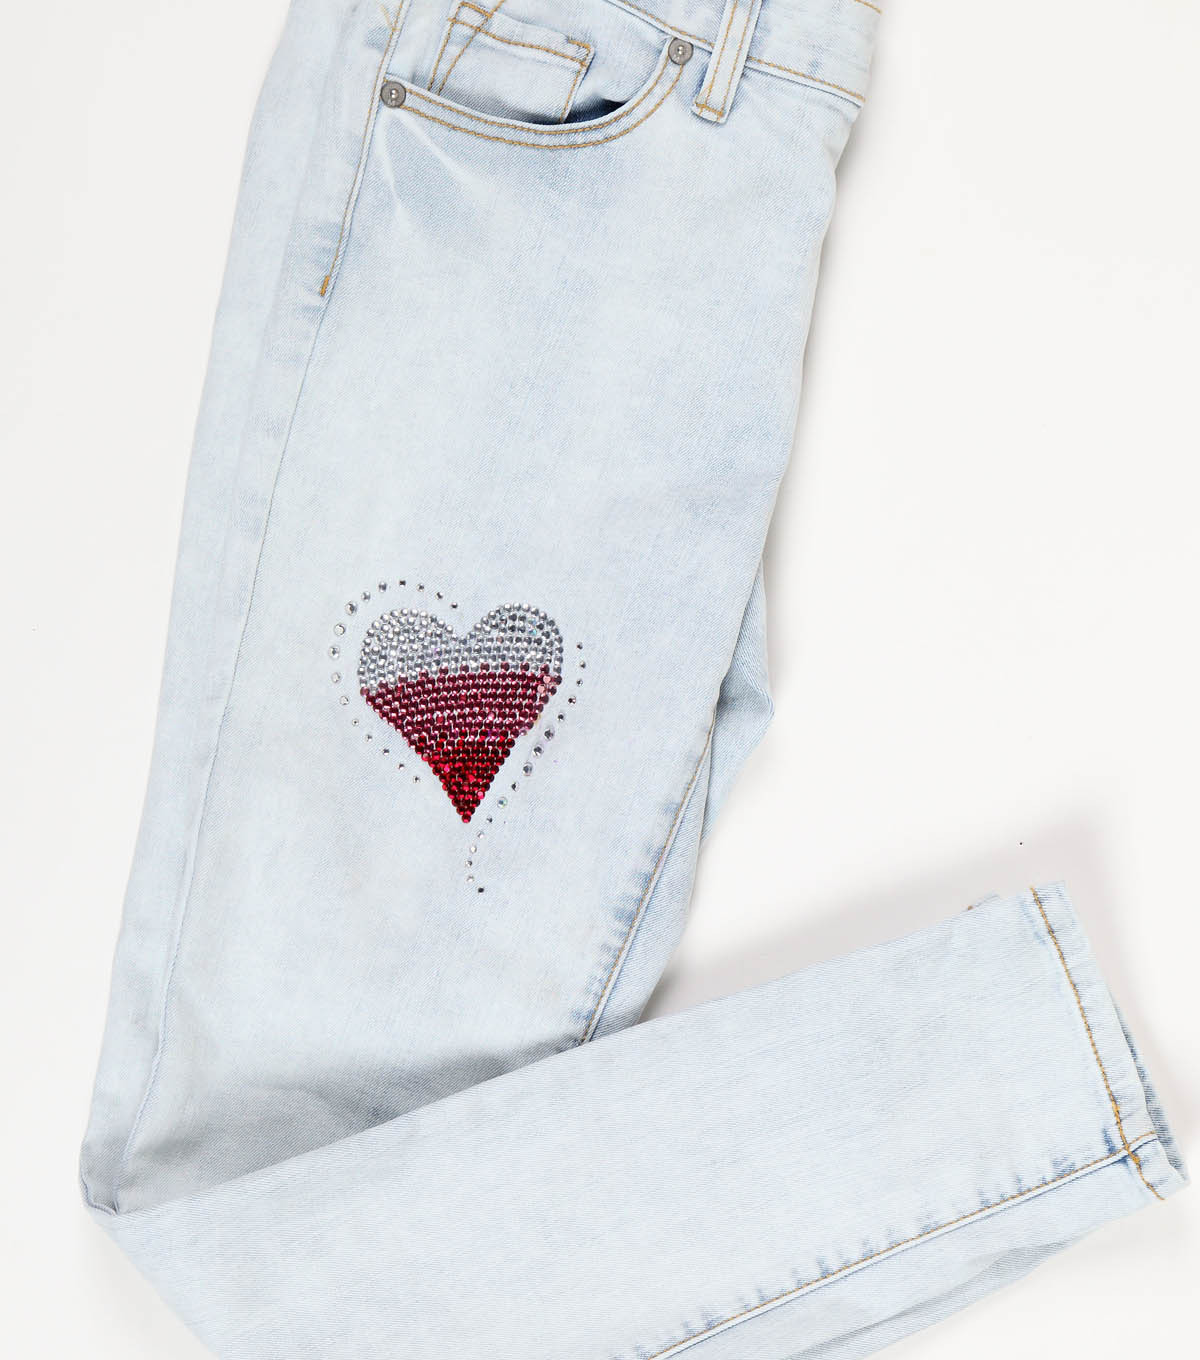 Sparkling Style Crystal Hearts Jeans